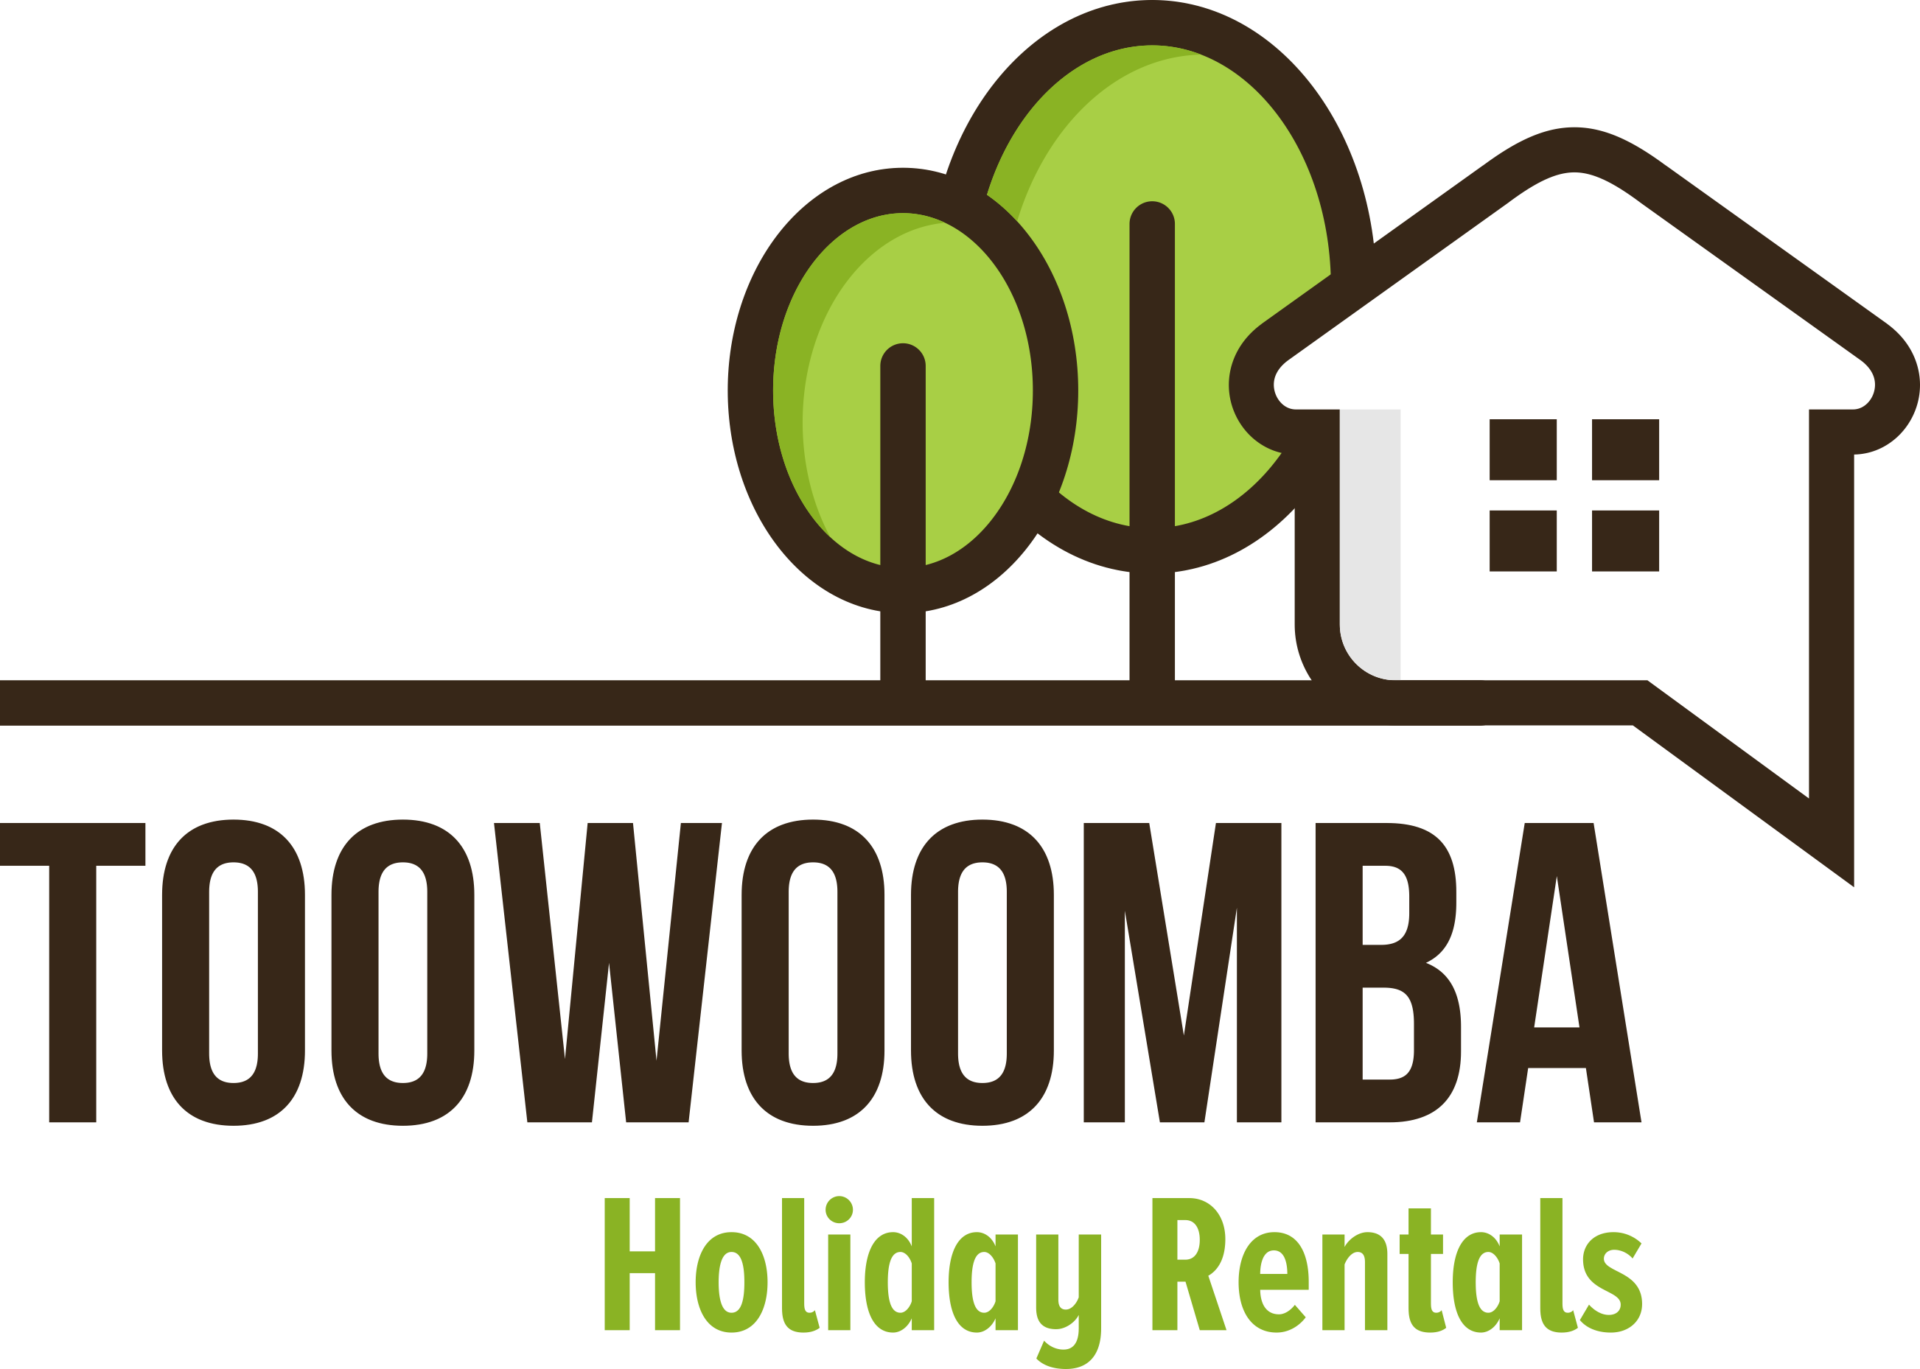 Toowoomba Holiday Rentals